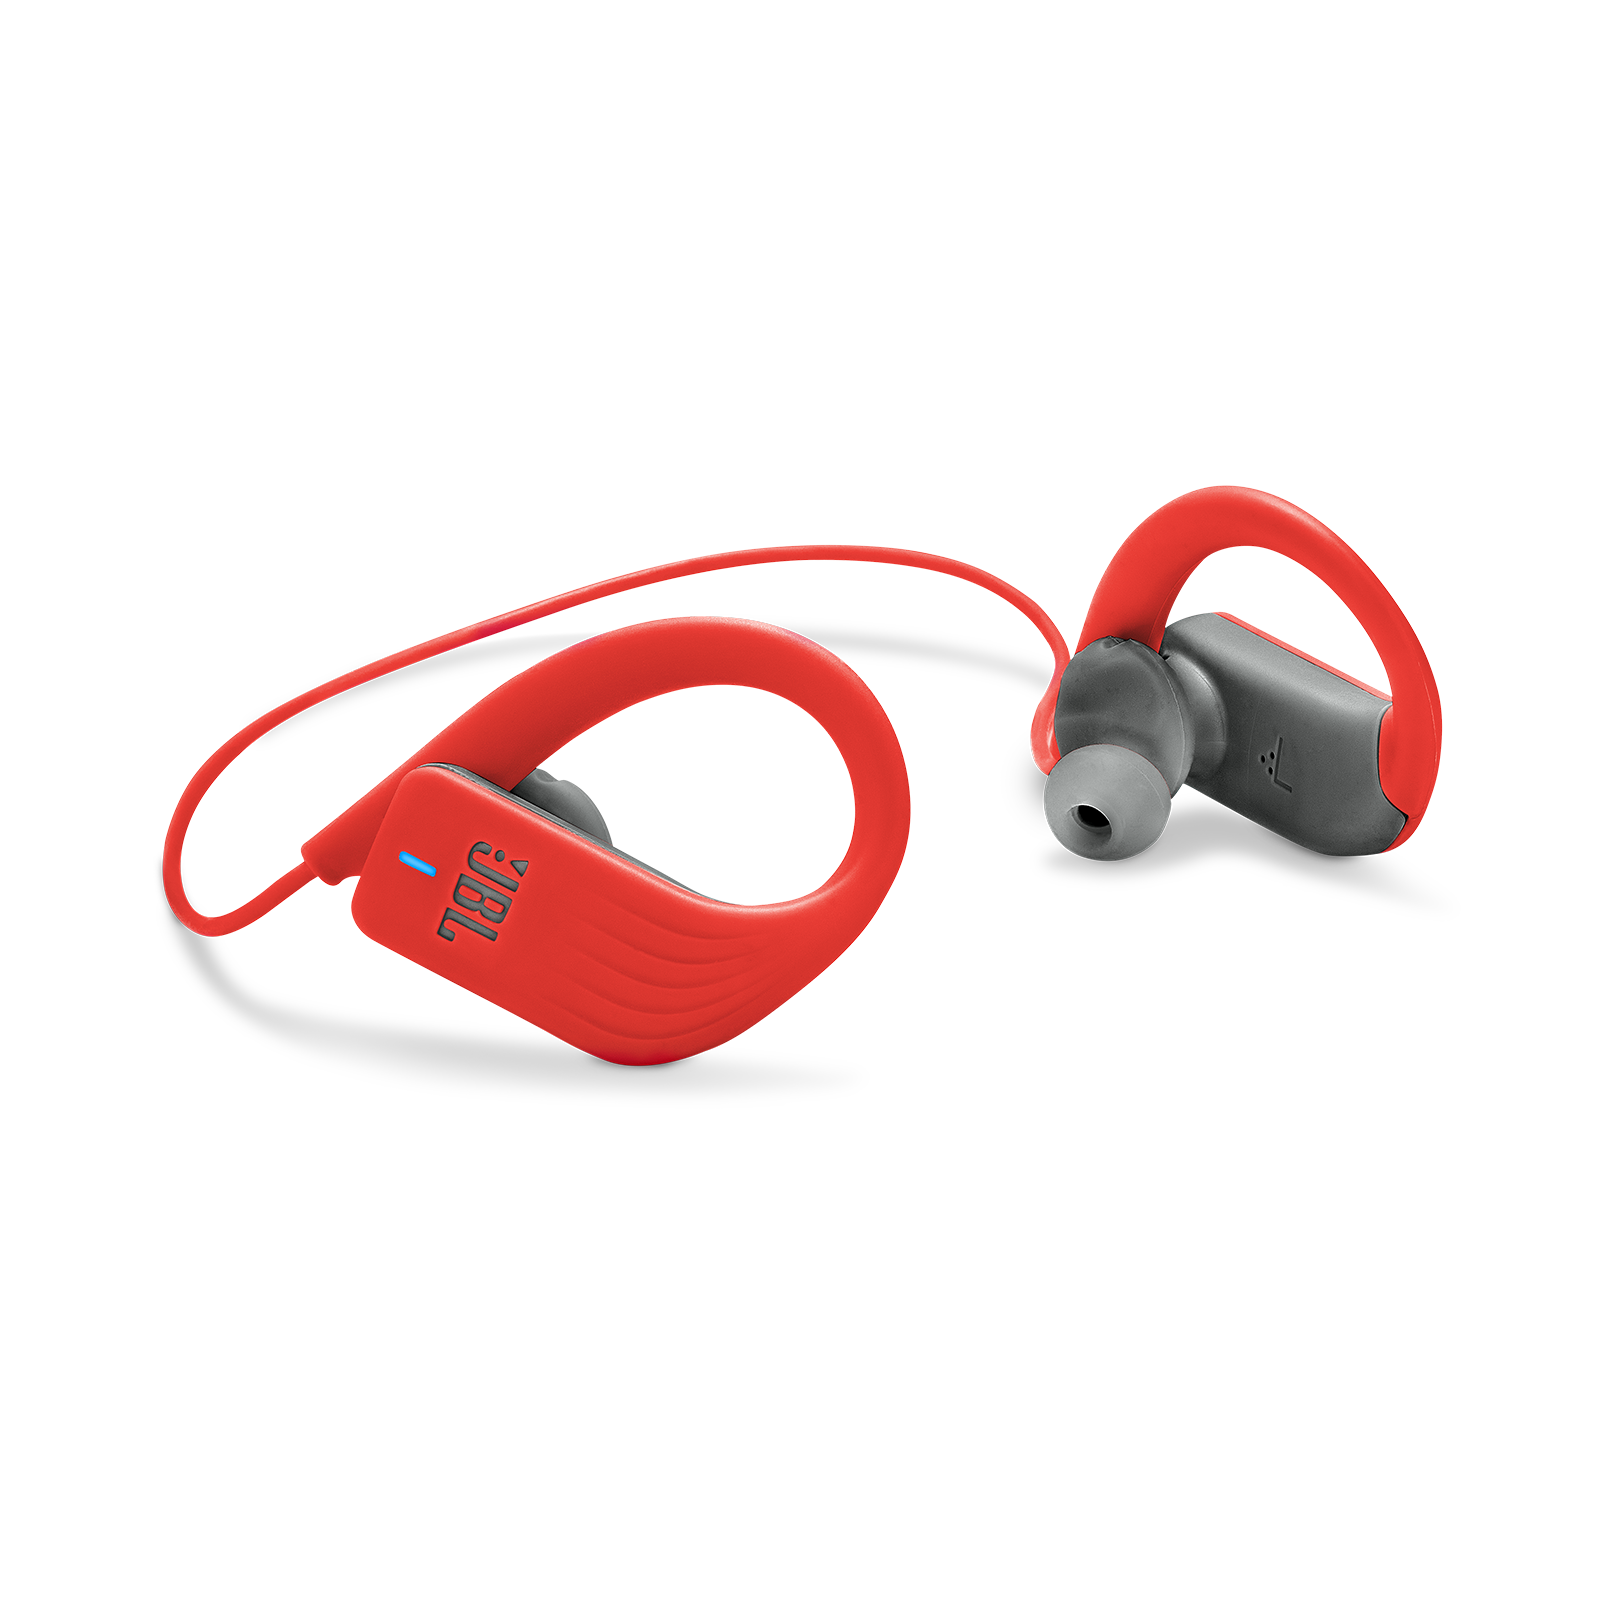 JBL Endurance SPRINT - Red - Waterproof Wireless In-Ear Sport Headphones - Detailshot 1